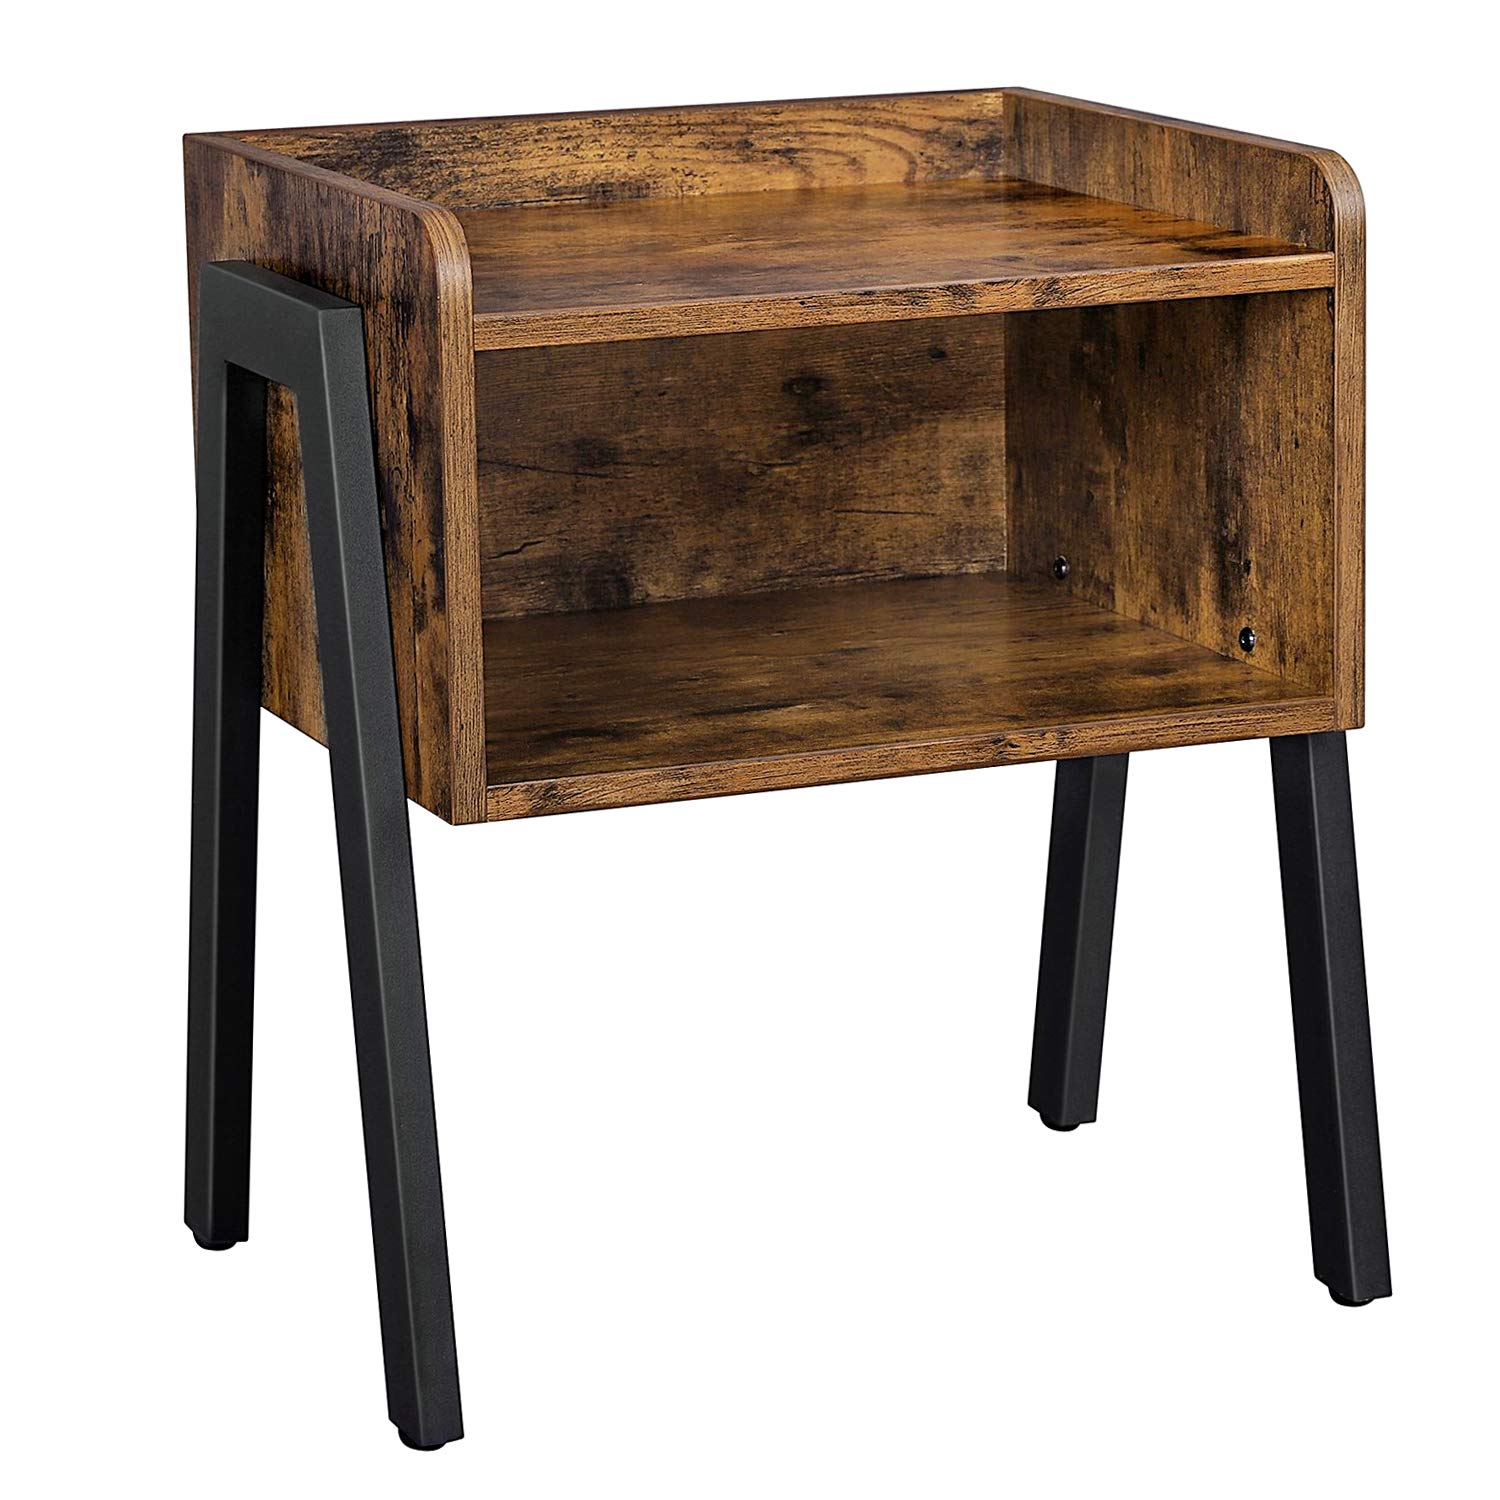 Shop hawkinswoodshop.com for solid wood & metal modern, traditional, contemporary, industrial, custom, rustic, and farmhouse furniture including our Ryan Open Drawer Industrial Farmhouse Nightstand.  Enjoy free nationwide shipping, help with the fight against hunger in the US, and support a family owned and operated business that helps puts food on the table for folks in rural Northern California.